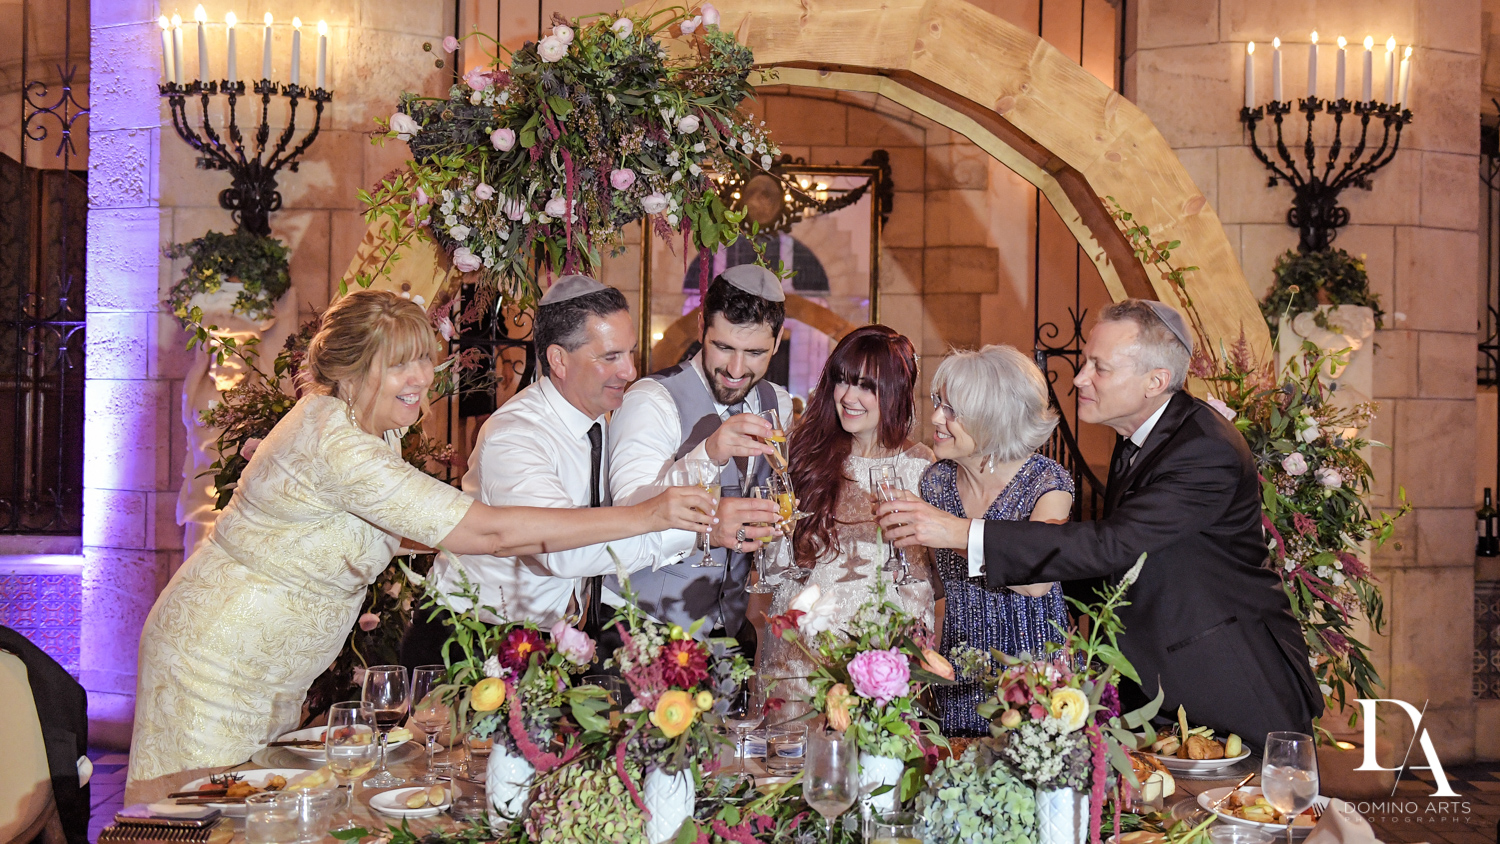 toast at Vintage Garden Wedding at Flagler Museum Palm Beach by Domino Arts Photography